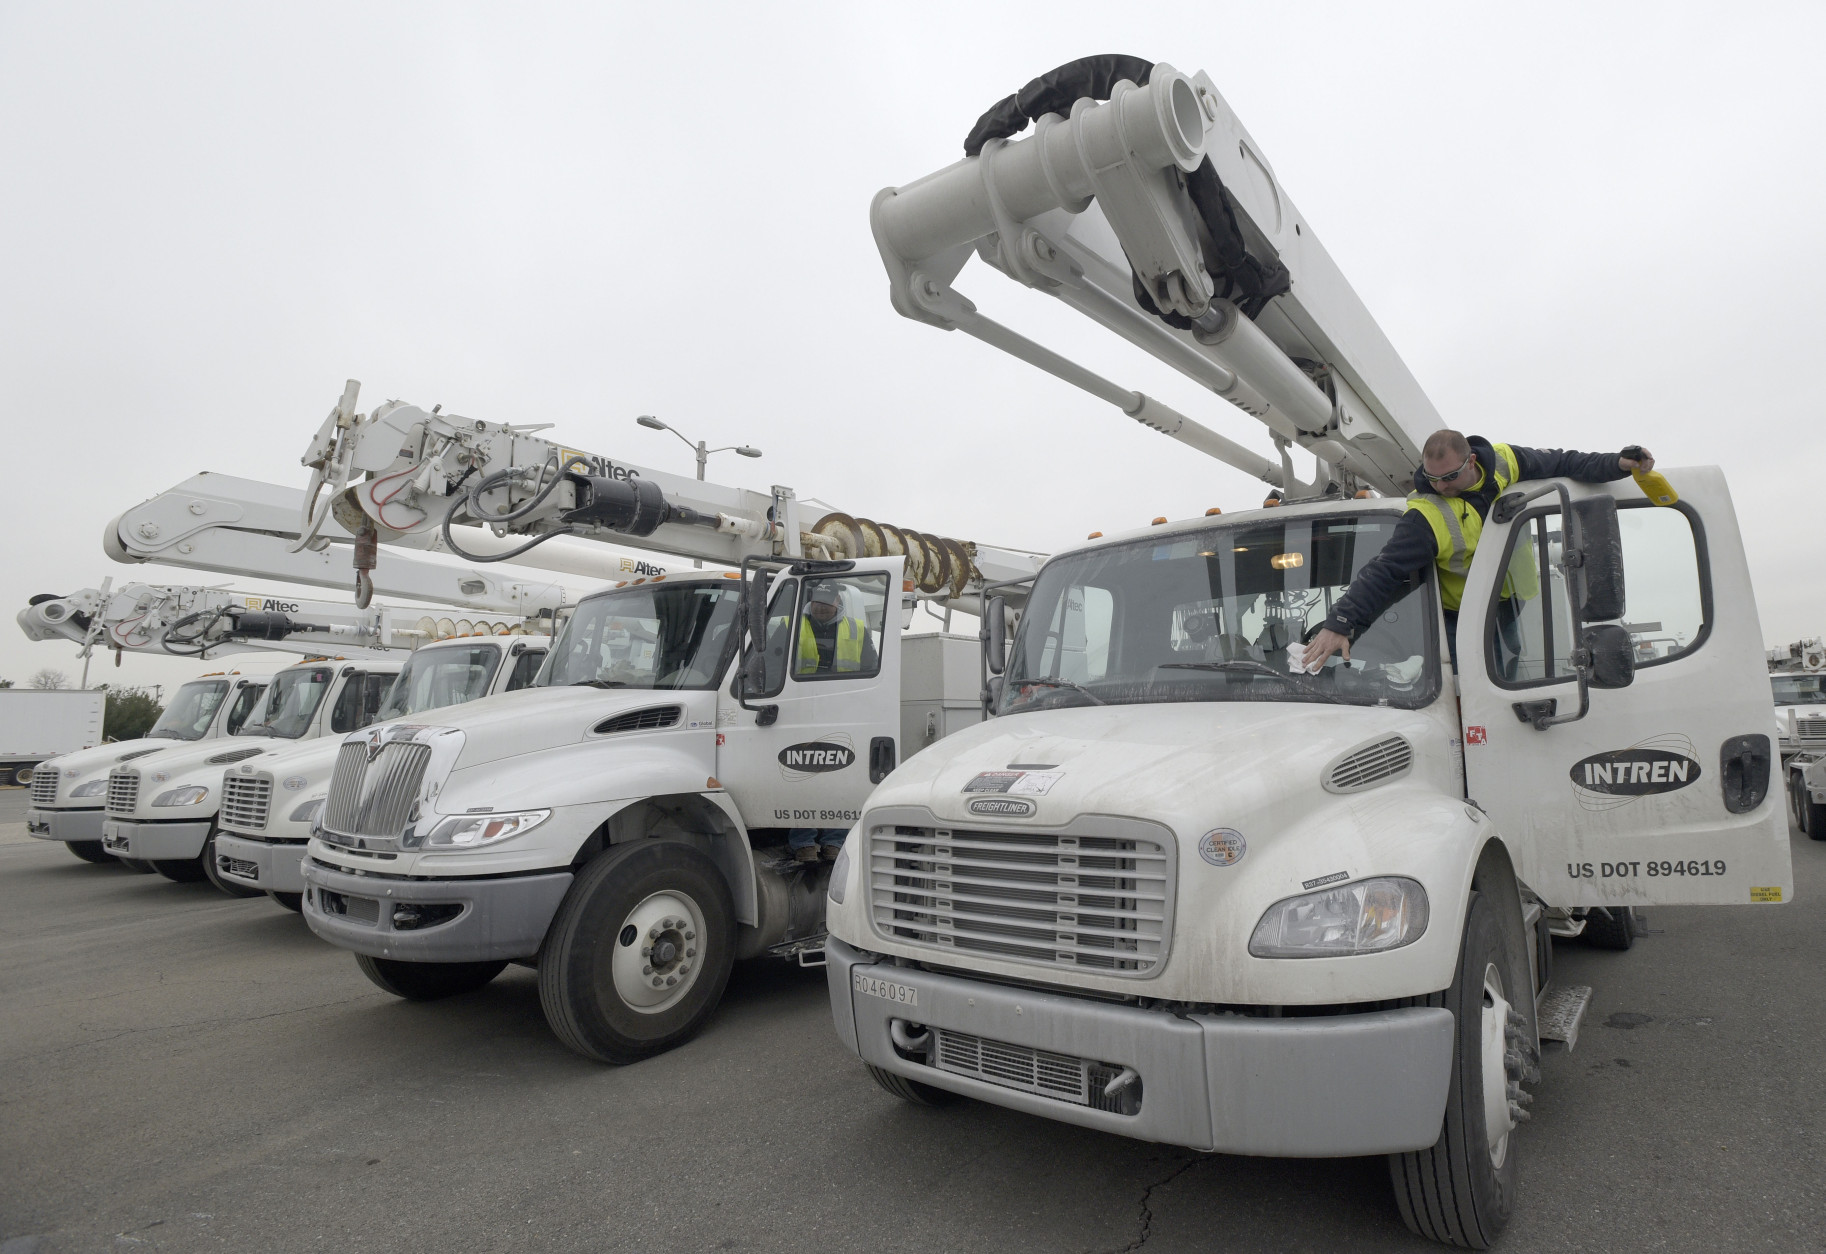 Utility worker Nick Bons, right, of Dorand, Ill., cleans his truck's windshield at a staging center for out-of-state utility workers in Hanover, Md., near Baltimore, Friday, Jan. 22, 2016. The northern mid-Atlantic region, including Baltimore, Washington and Philadelphia, is preparing for a weekend snowstorm that is now forecast to reach blizzard conditions. (AP Photo/Steve Ruark)